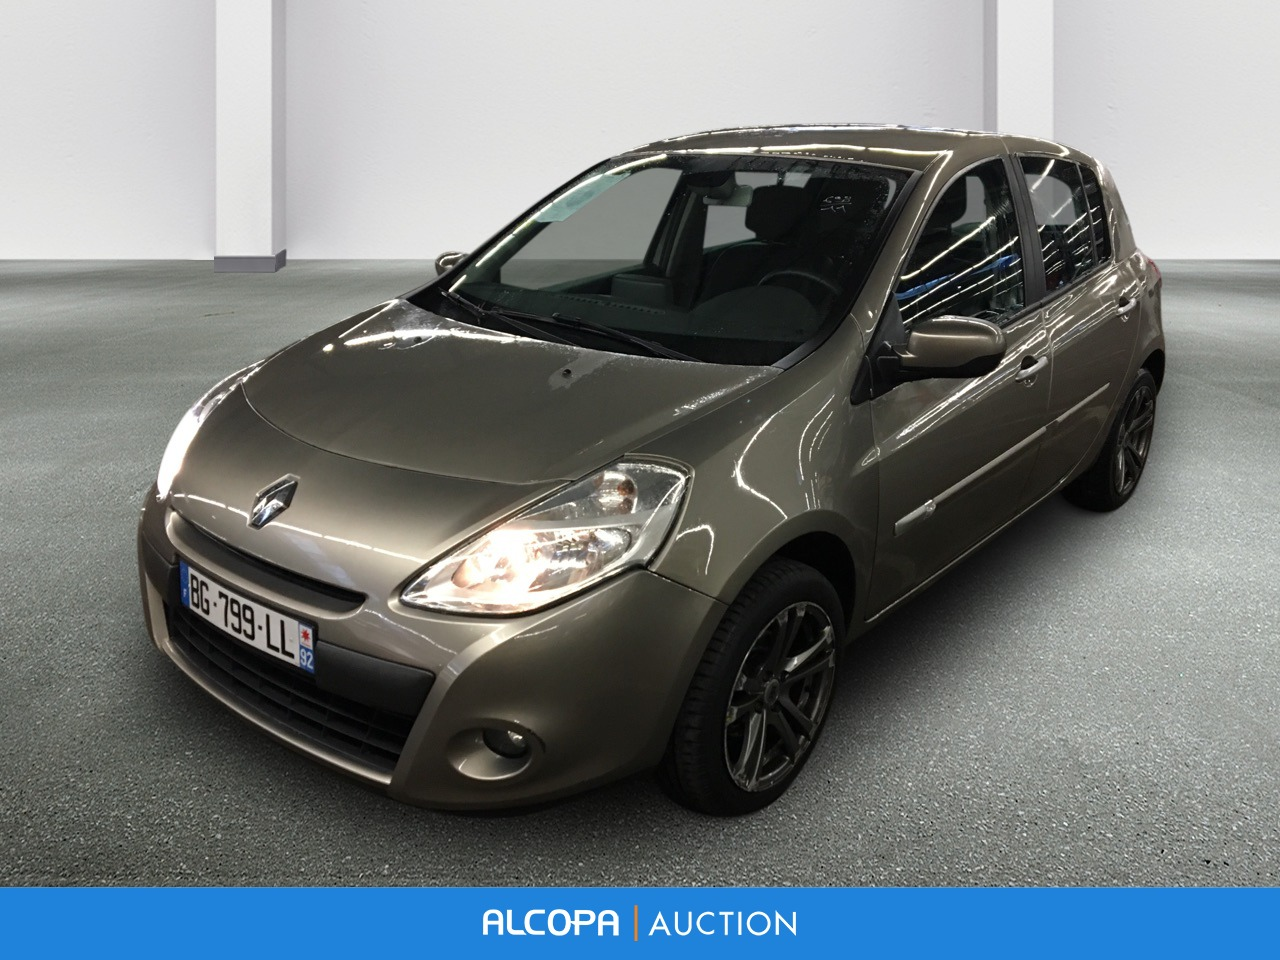 renault clio iii clio iii dci 90 eco2 exception tomtom alcopa auction. Black Bedroom Furniture Sets. Home Design Ideas